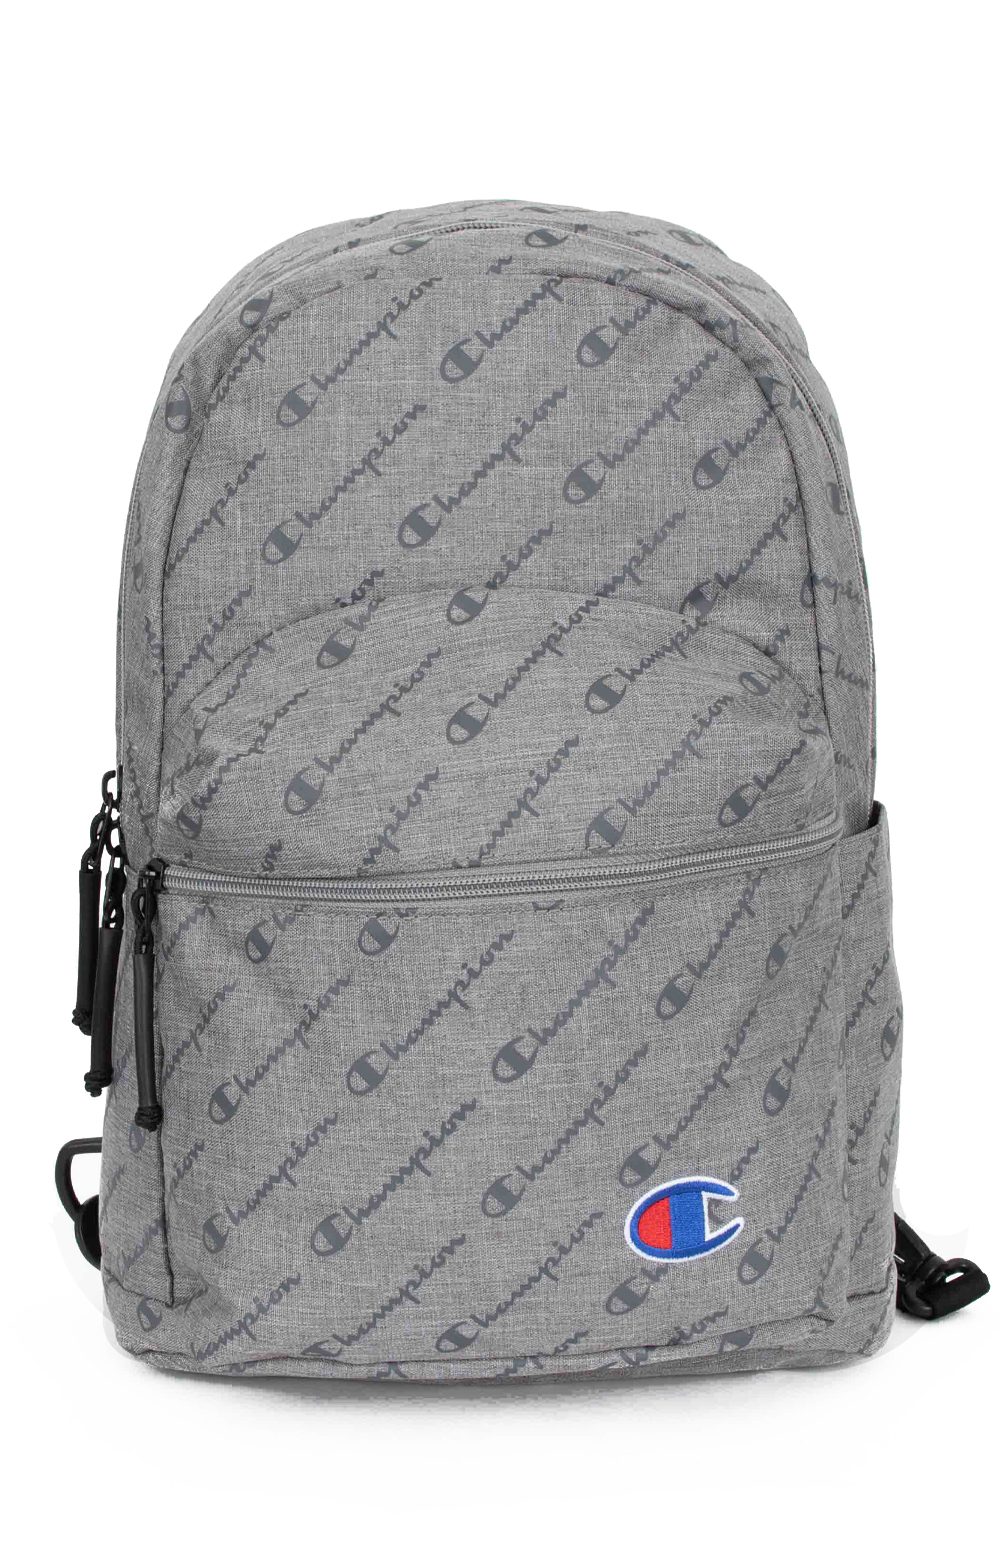 Supercize Mini Crossover Backpack - Grey Grey 31fd38828f48d